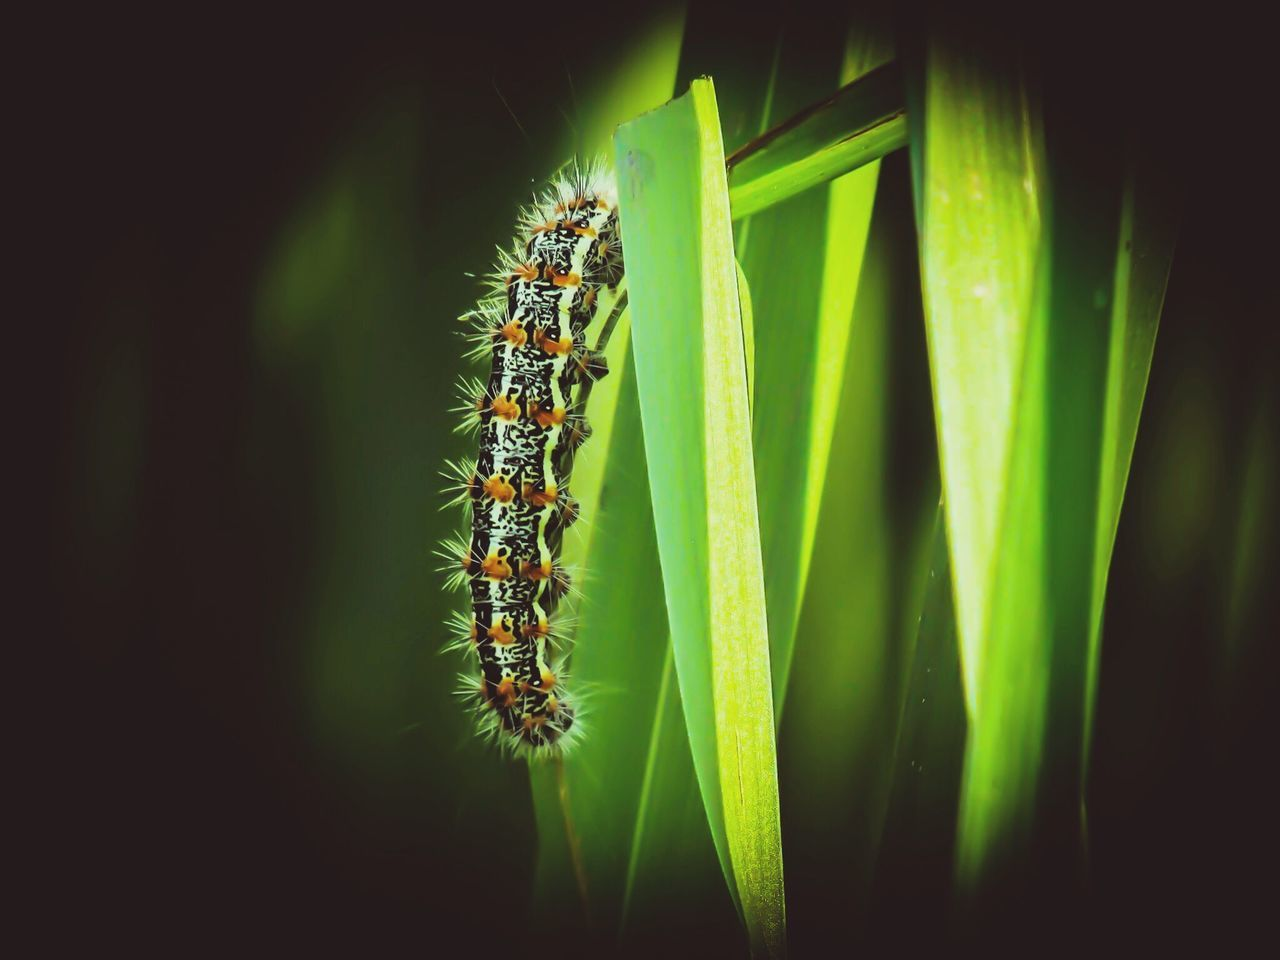 animal themes, insect, animals in the wild, one animal, green color, nature, no people, close-up, animal wildlife, day, outdoors, plant, beauty in nature